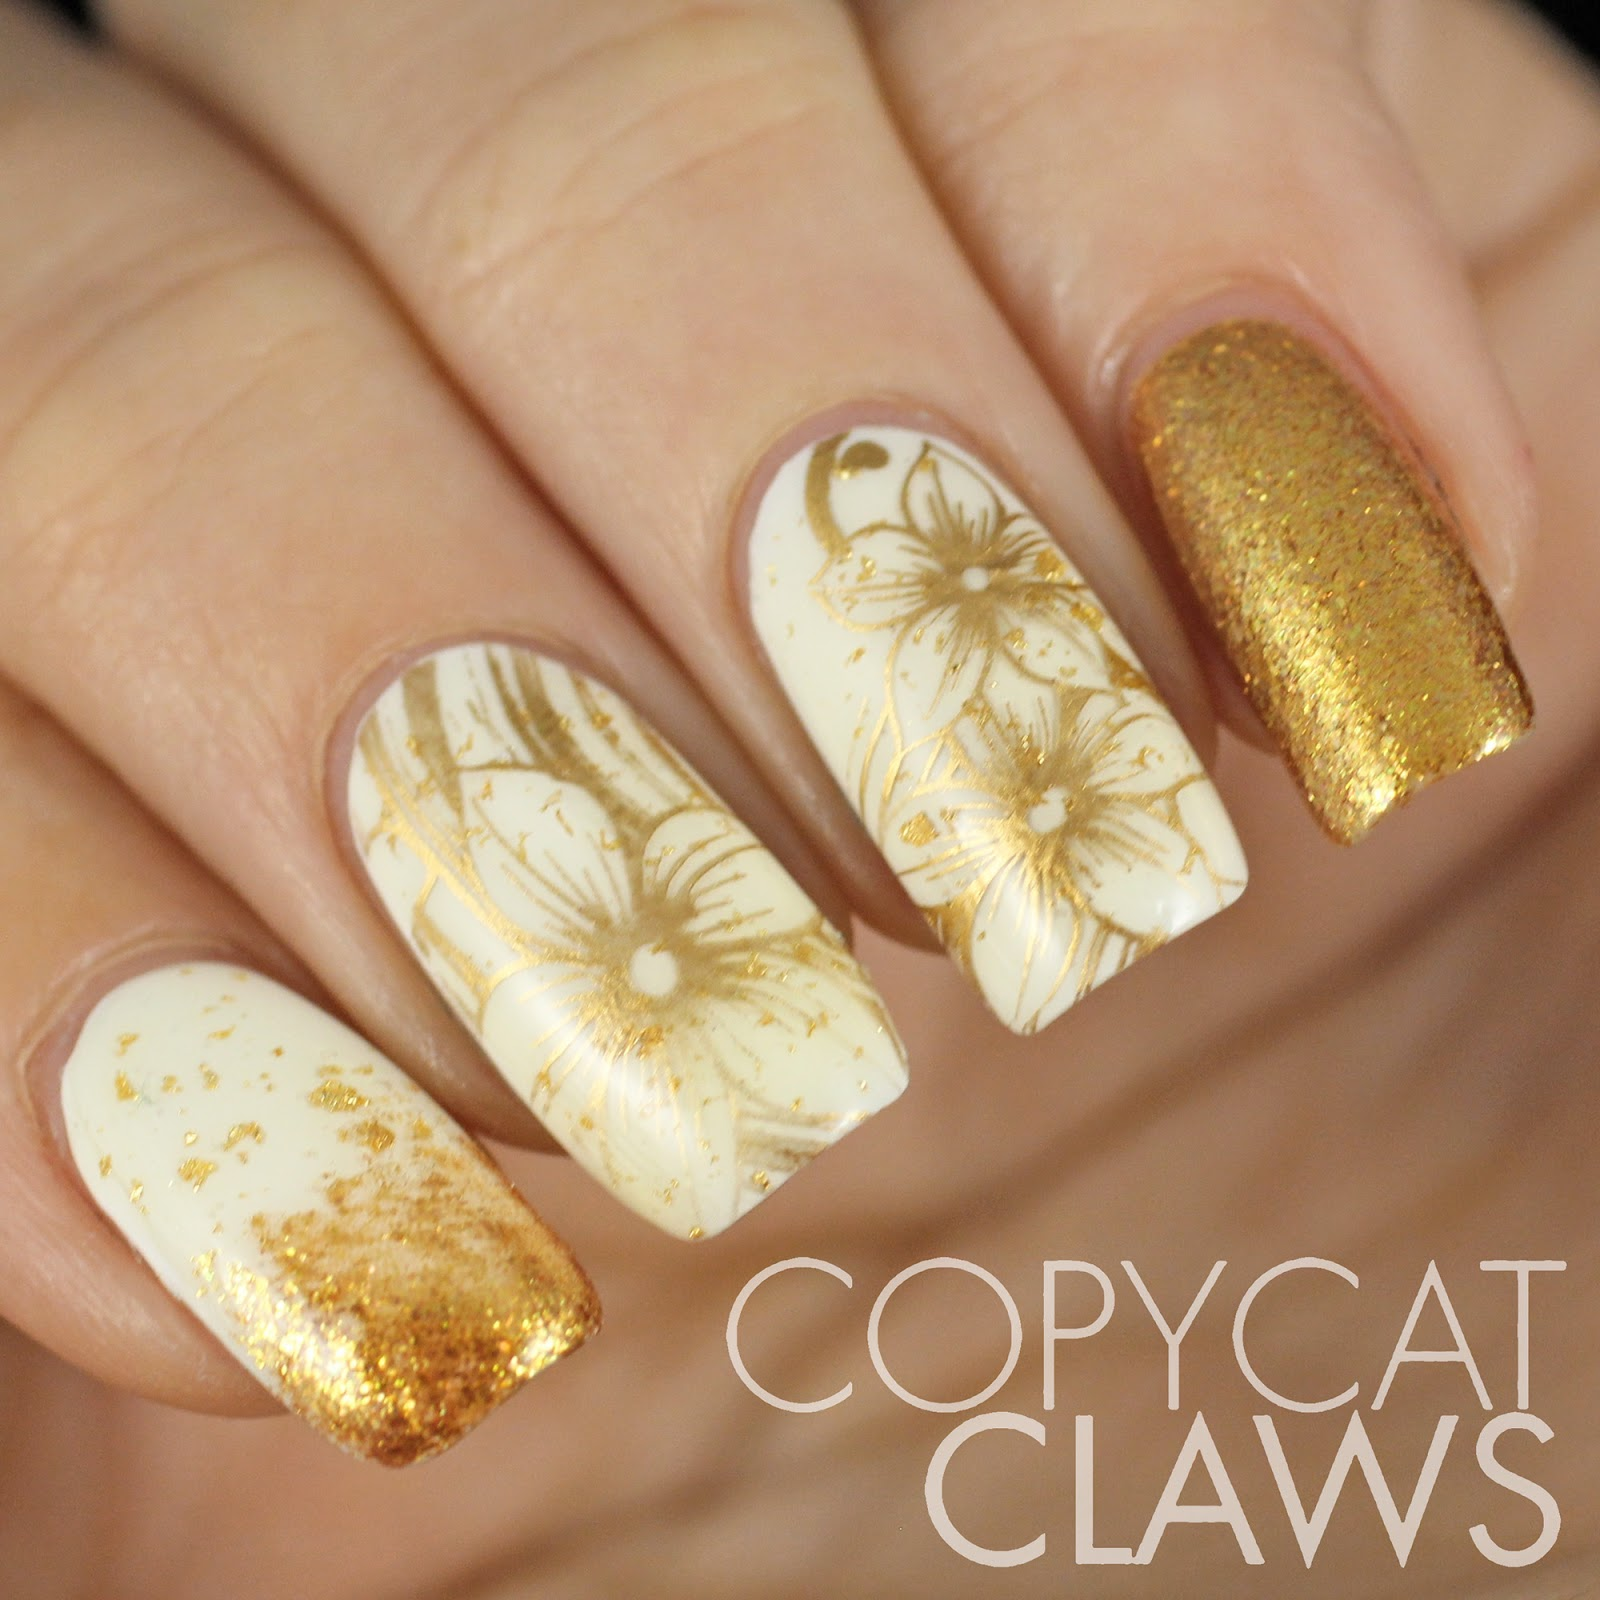 Copycat Claws: Sunday Stamping - White and Gold Nails